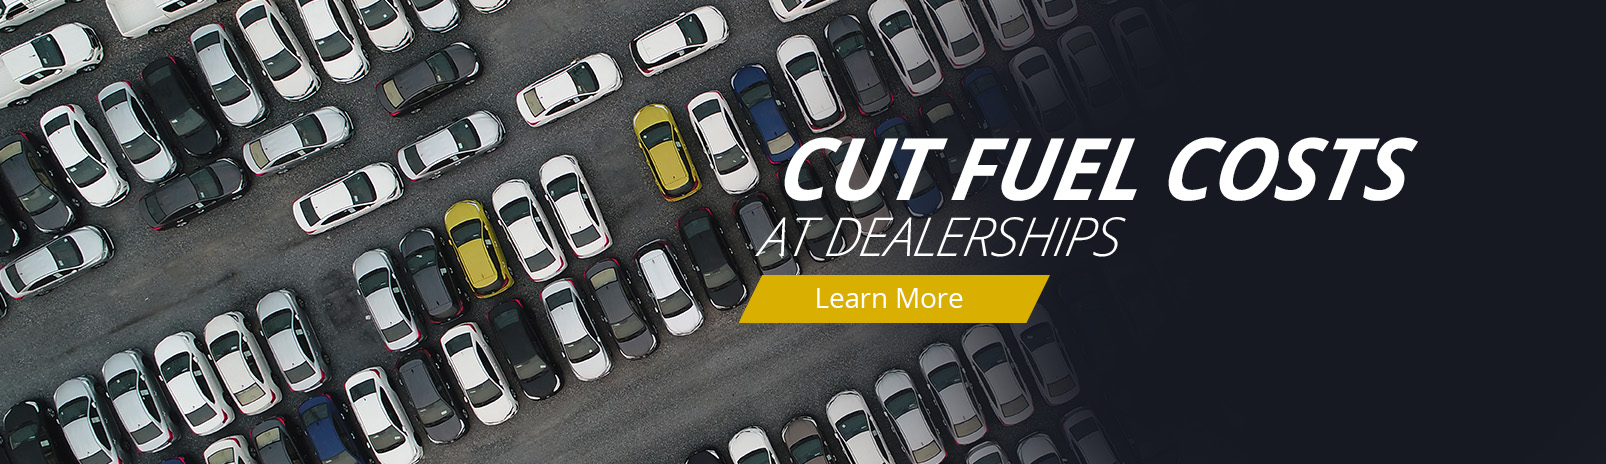 Cut Fuel Costs at Dealerships